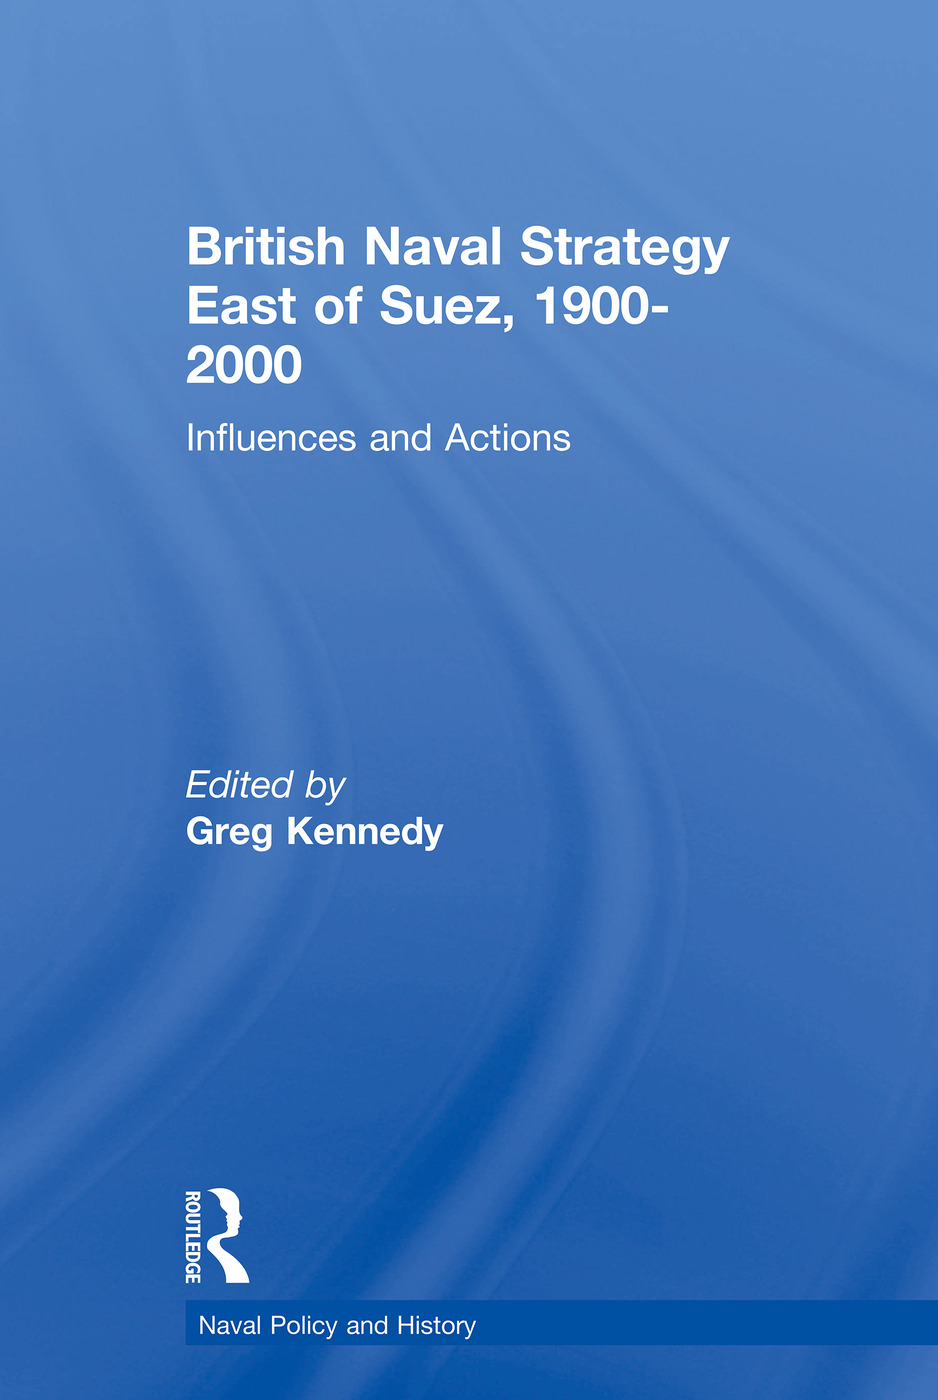 British Naval Strategy East of Suez, 1900-2000: Influences and Actions book cover